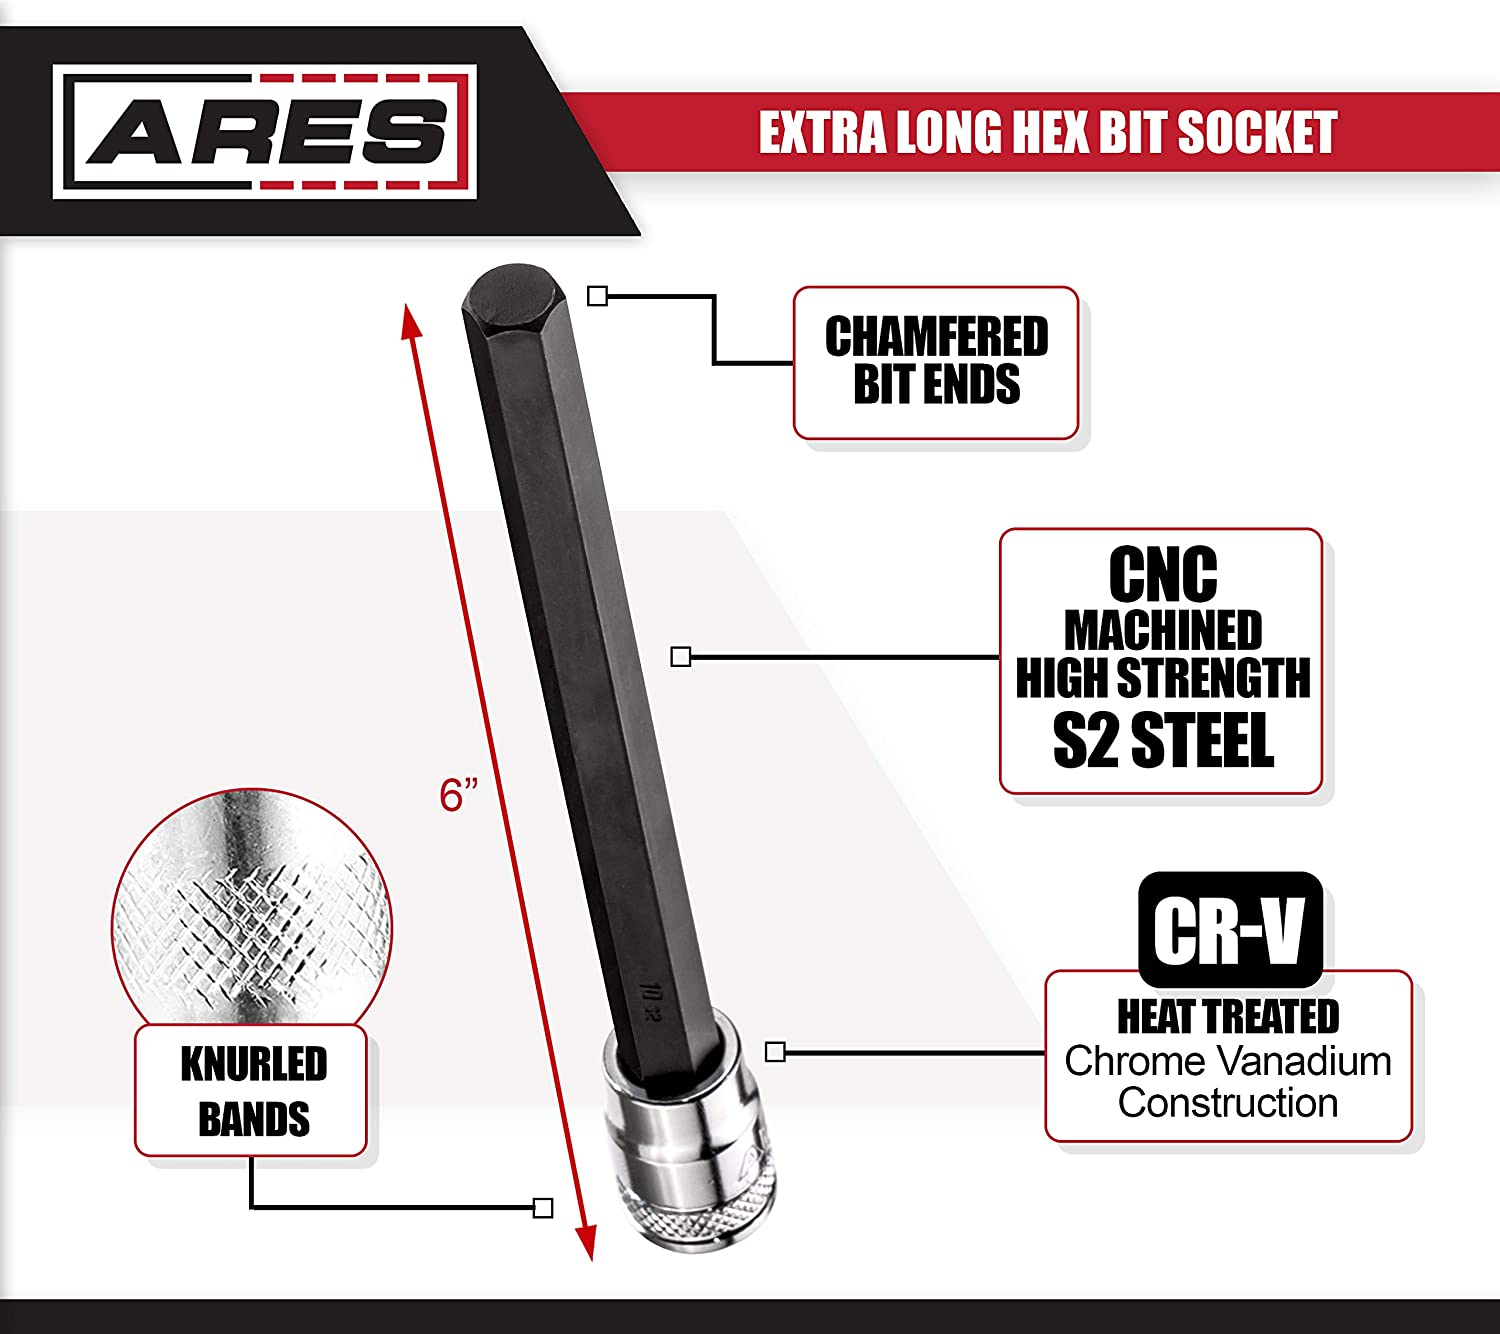 ARES 70281-5//16-Inch Extra Long Hex Bit S2 Bit Provides Greater Torque Precisely Machined Hex Bit Ends with 3//8-Inch Drive Heat Treated Chrome Vanadium Steel Sockets